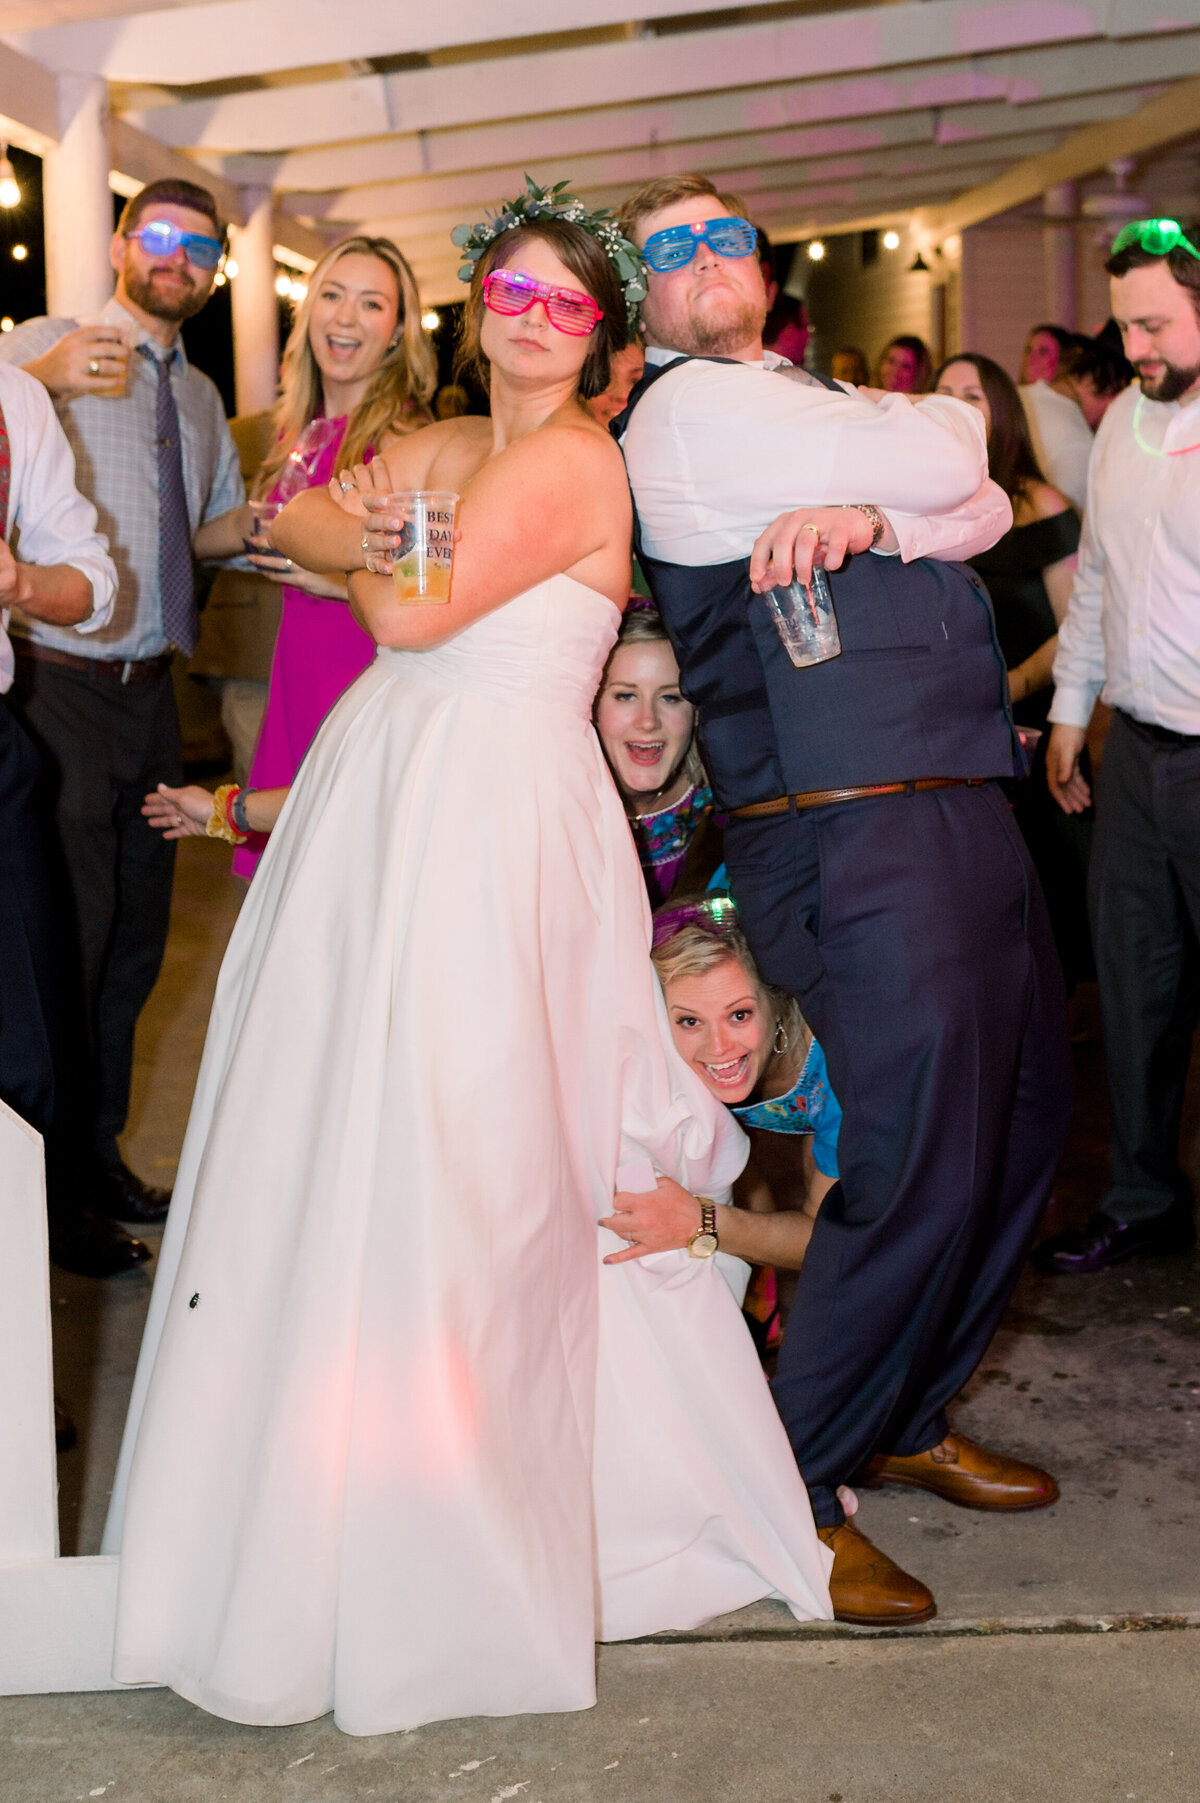 A fun reception photo of the bride and groom wearing silly glasses and posing back to back